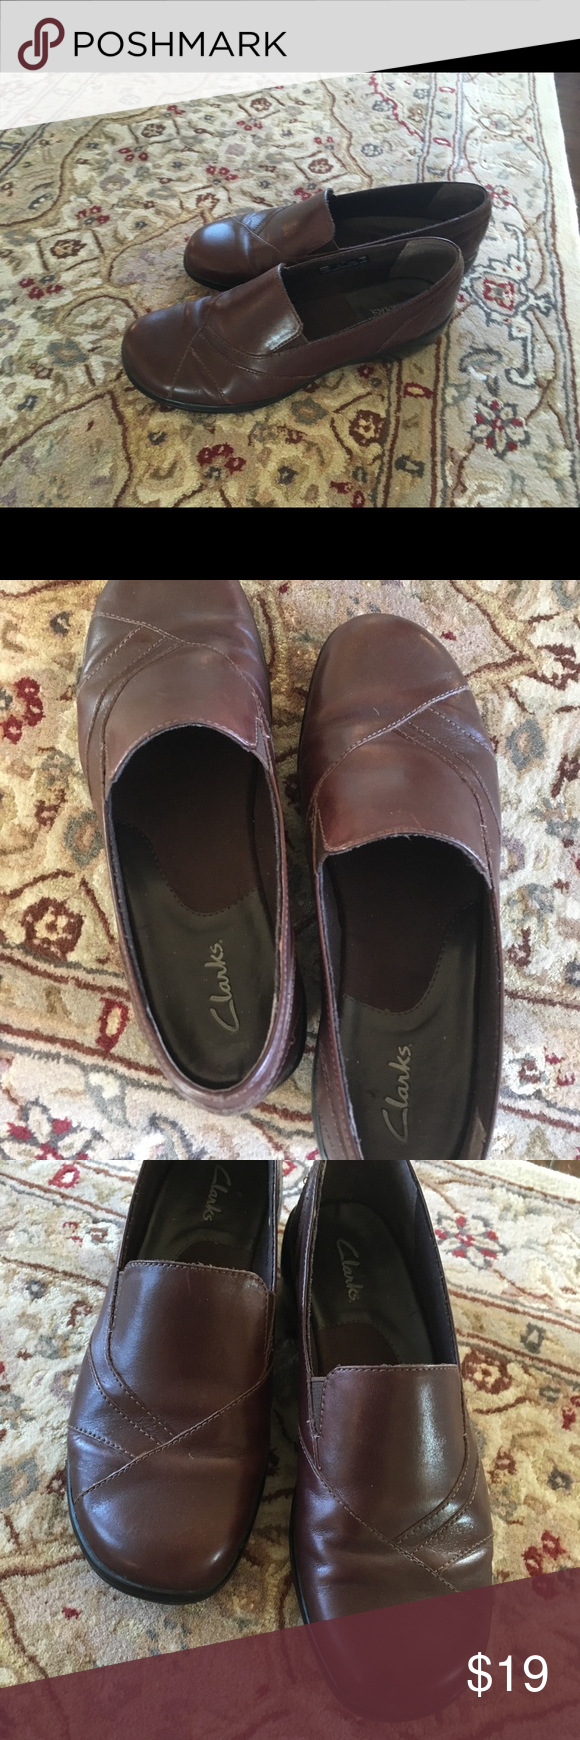 debace6f656 I just added this listing on Poshmark  Clark leather slip on brown  excellent condition.  shopmycloset  poshmark  fashion  shopping  style   forsale  Clarks   ...